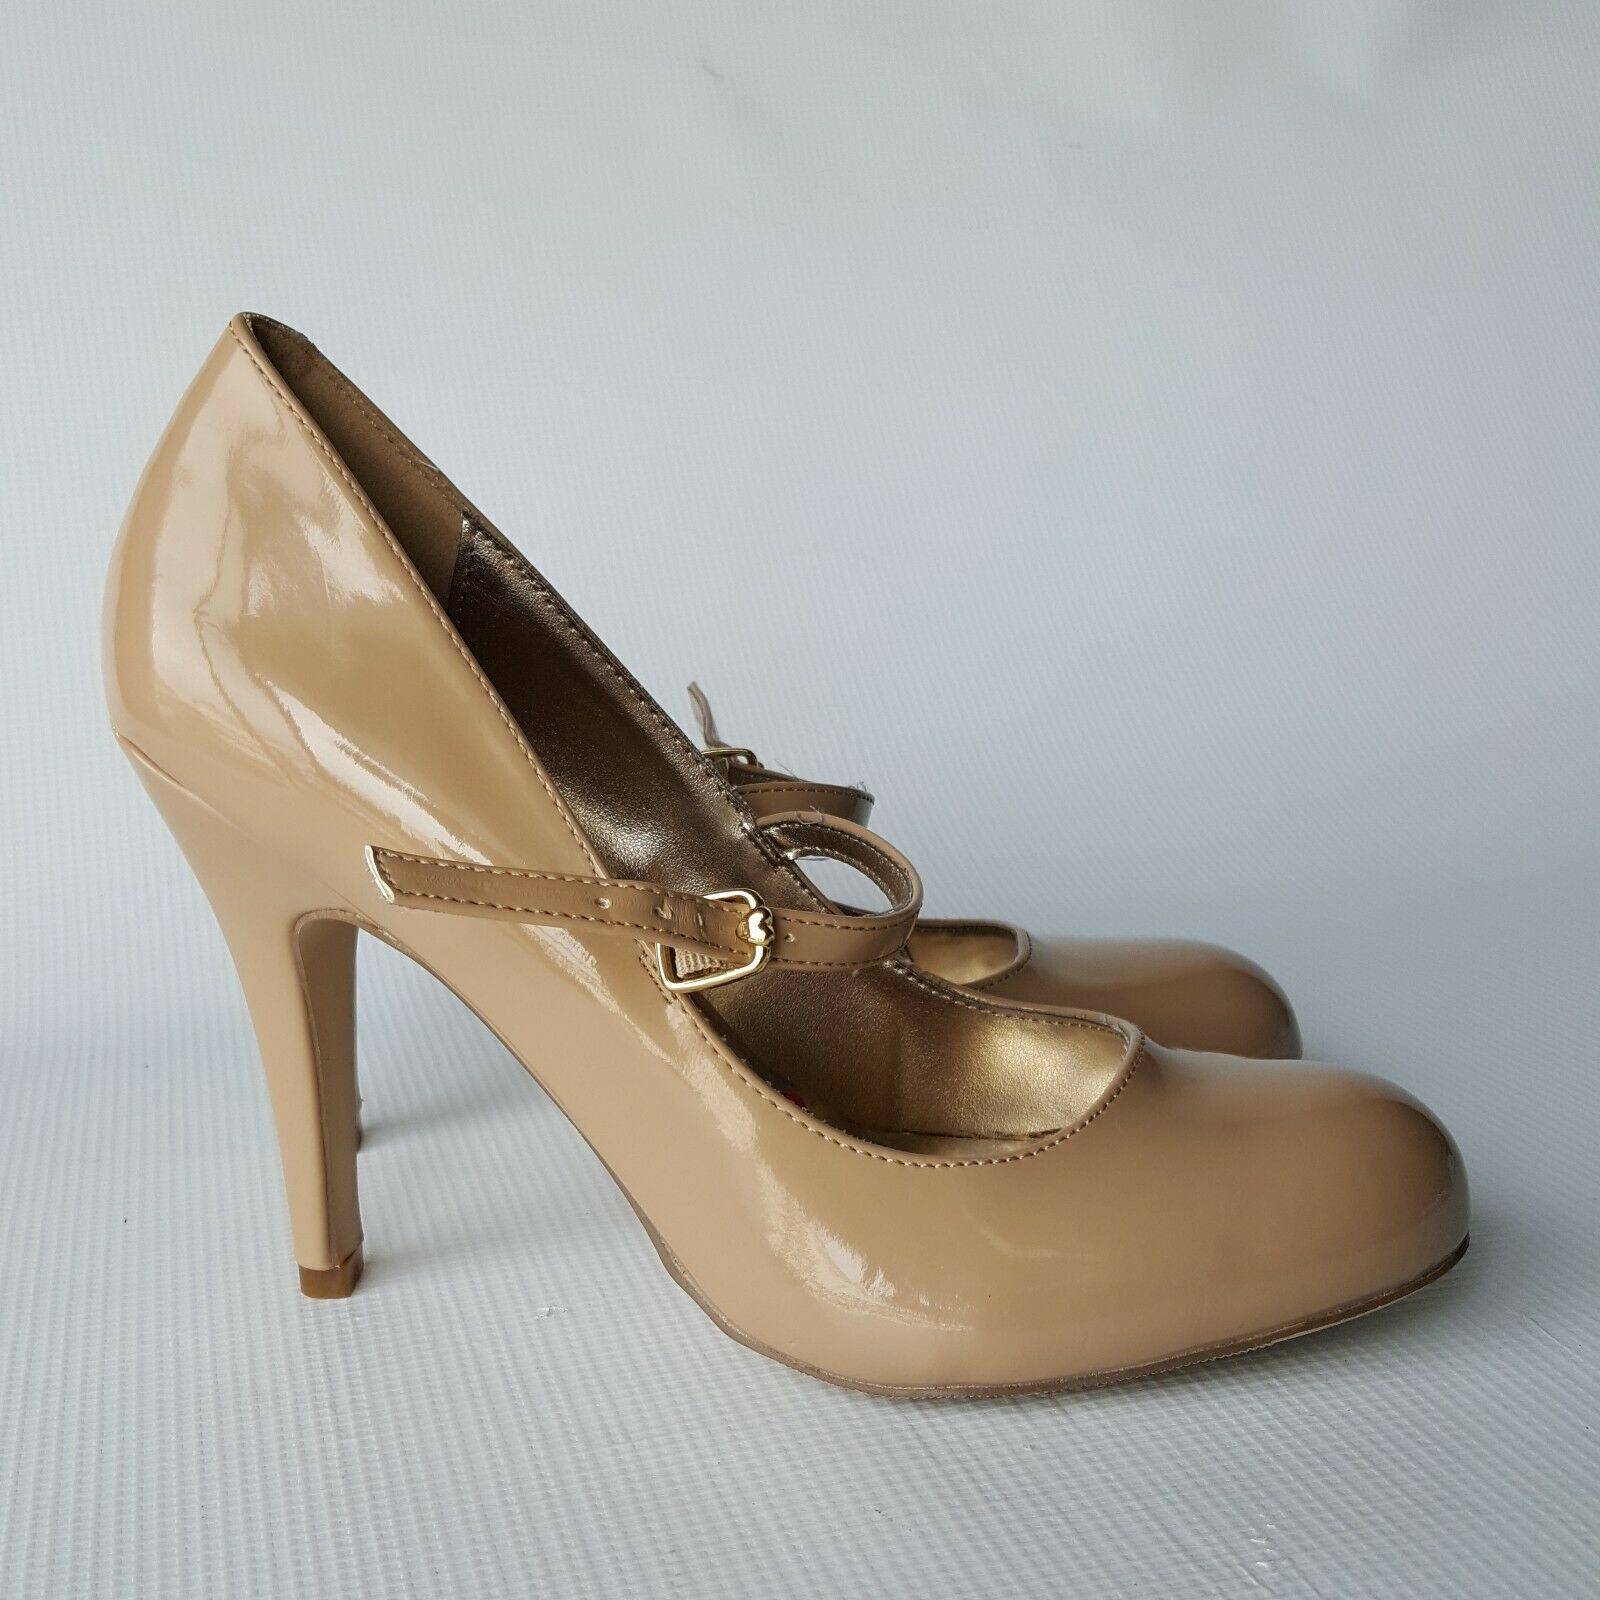 Bestsyville by Betsey Johnson Beige Patent Leather Mary Jane Pump Heels Size 8M